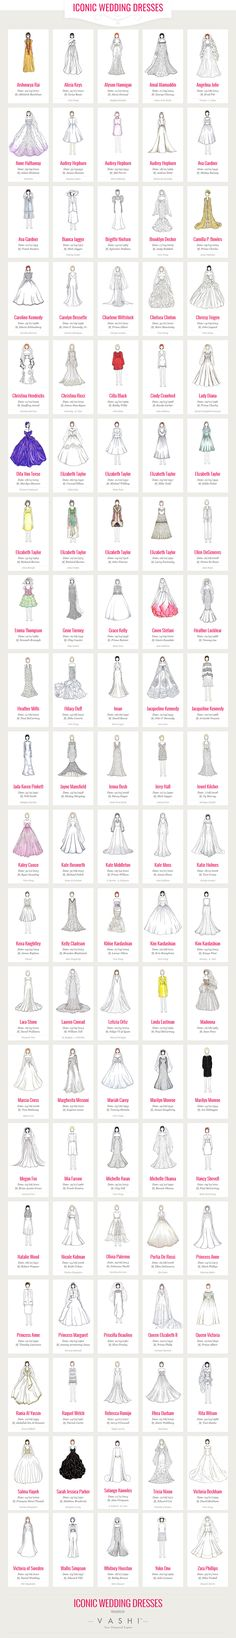 Here's a full, mind-blowing version of the graphic with all 100 dresses, from Indian actress Aishwarya Rai to British royal Zara Phillips. It's hard to pick just ONE favorite: